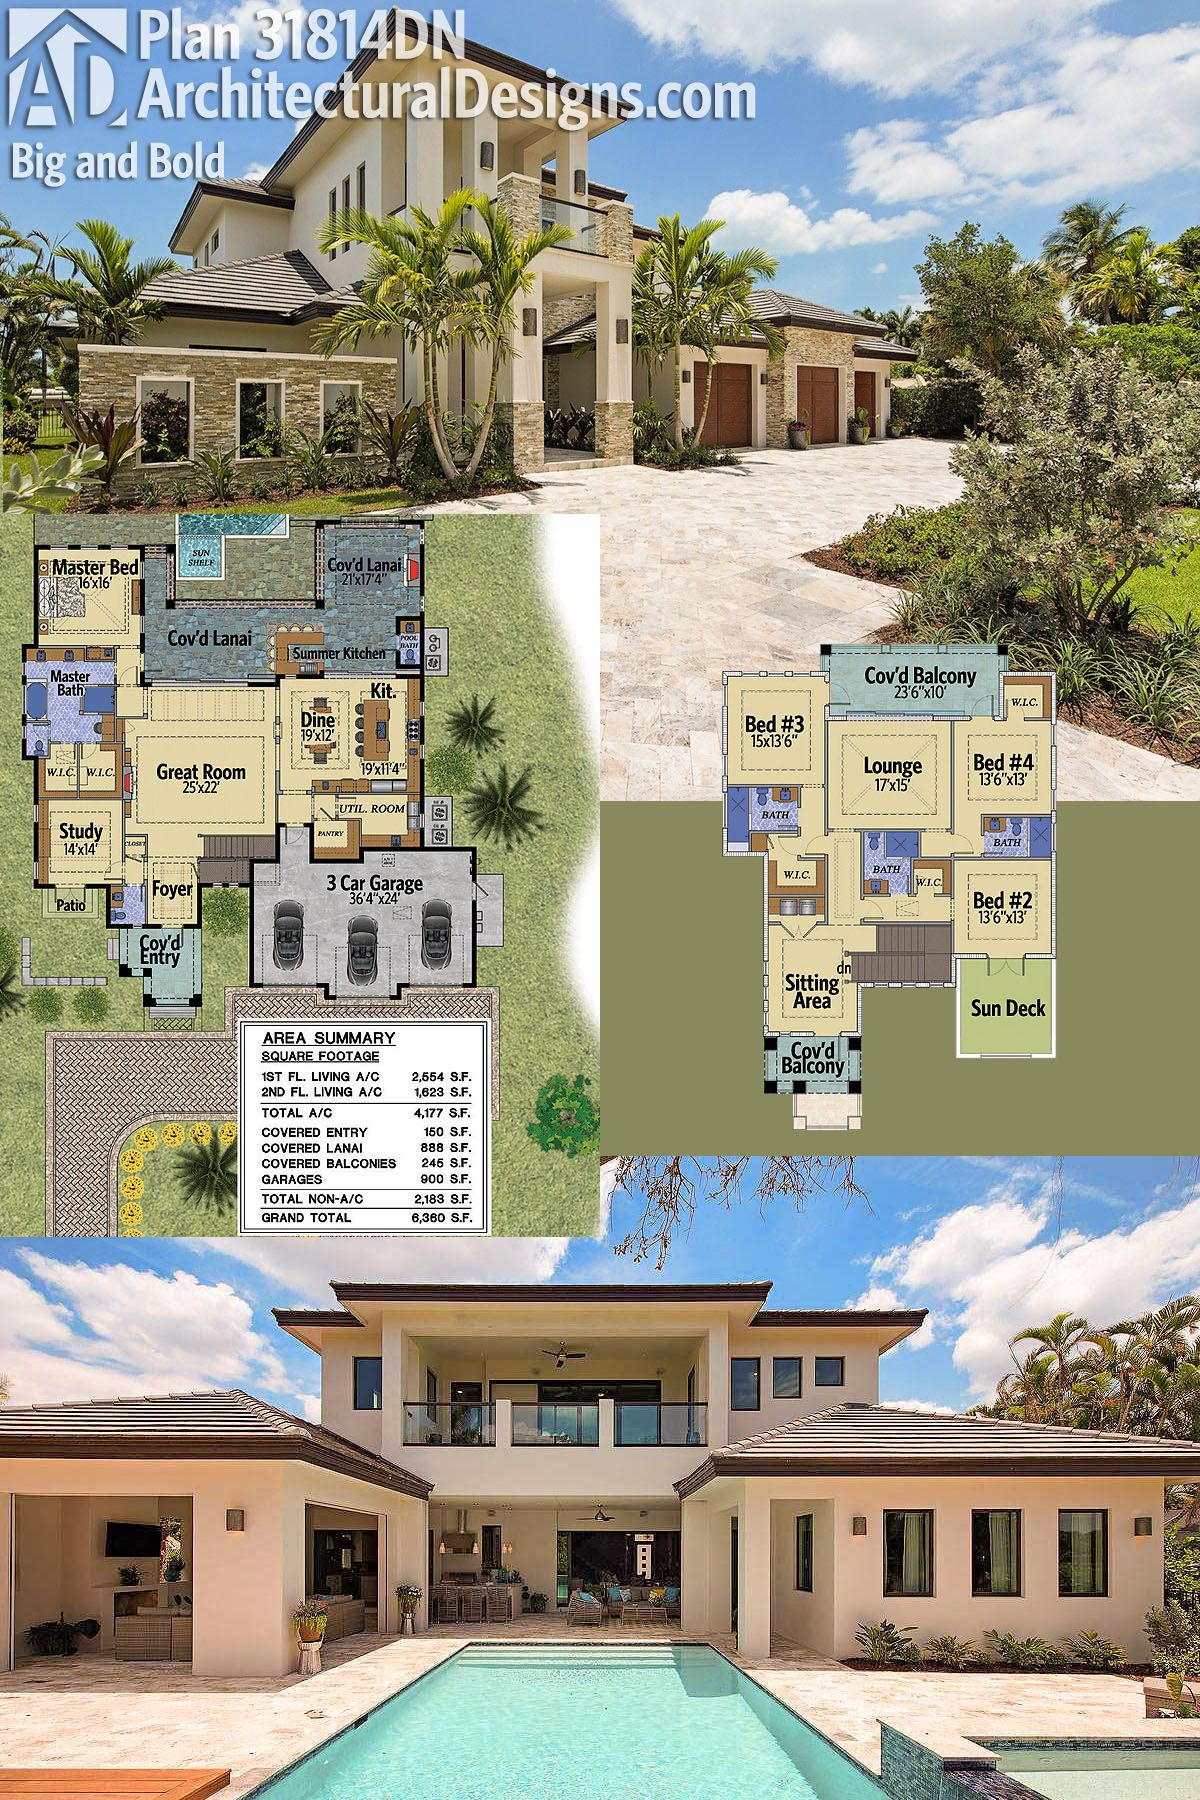 Architectural Designs Luxury House Plan 31814dn Big And Bold Ready When You Are Where Do You Want T House Plans Mansion Luxury House Plans Dream House Plans